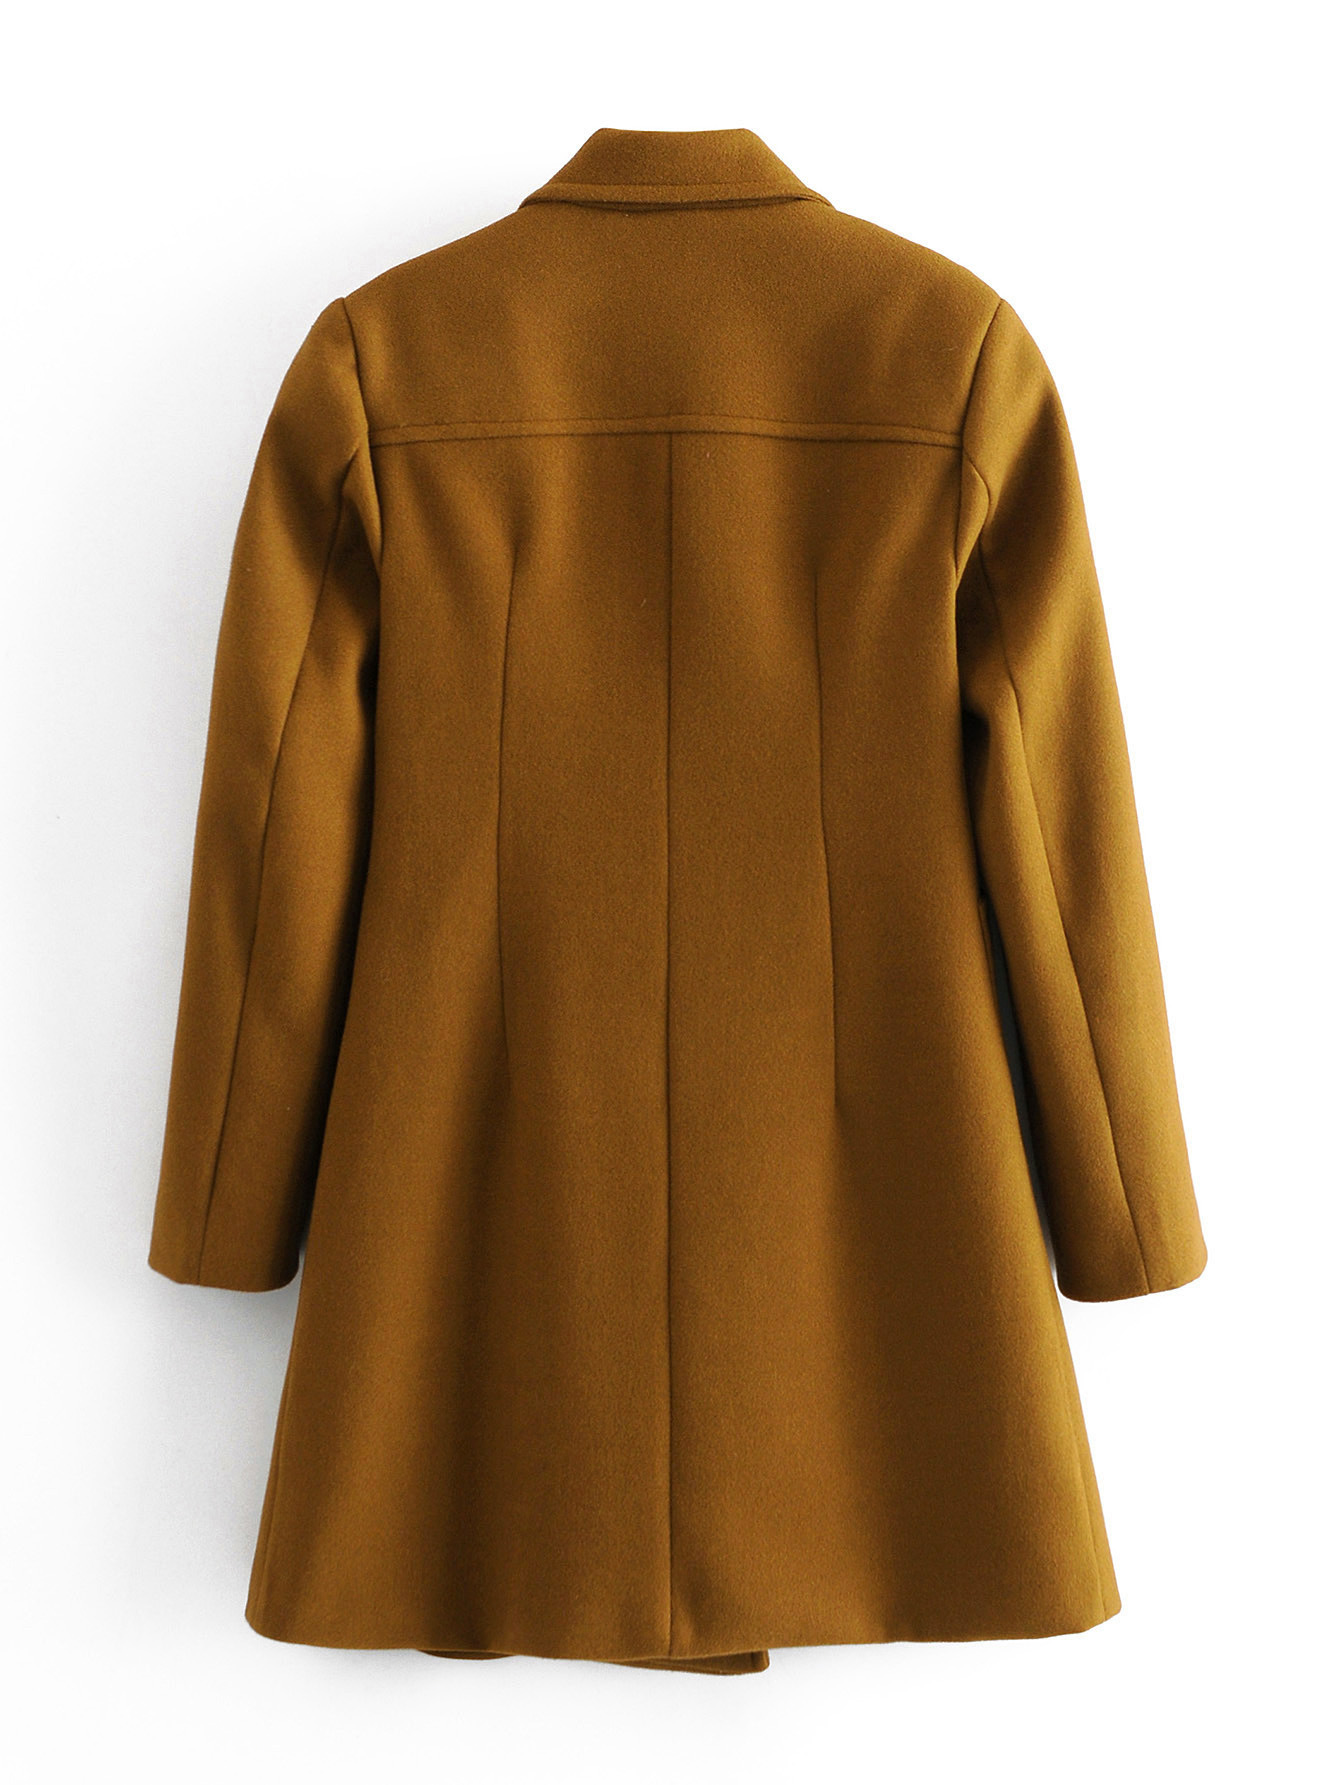 women's autumn and winter new wool double-breasted coat jacket  NSAM2286